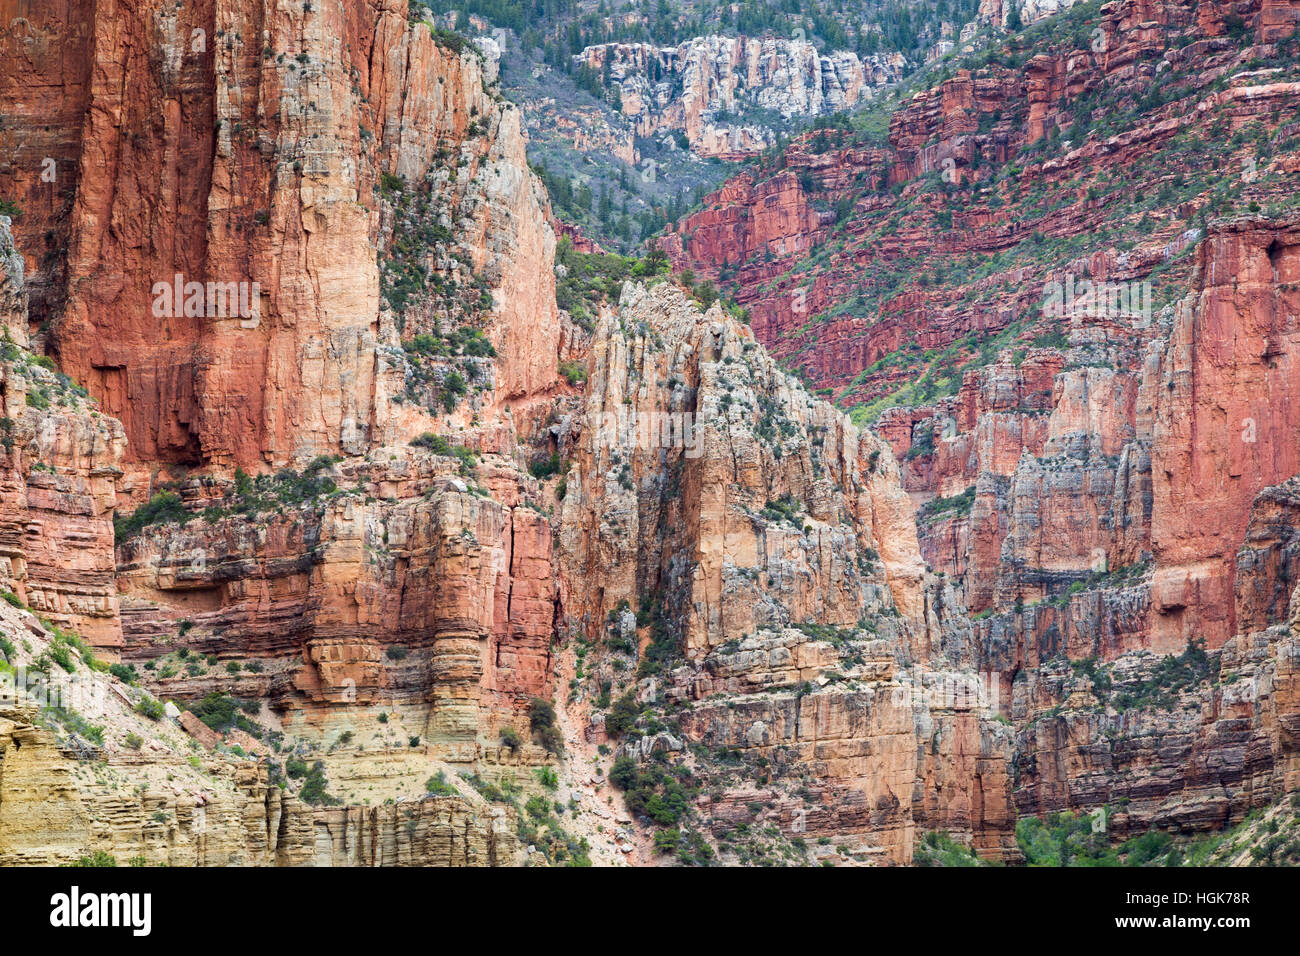 The Supai Group on top of the Redwall Limestone formation and the Muav Limestone formation. Grand Canyon National - Stock Image